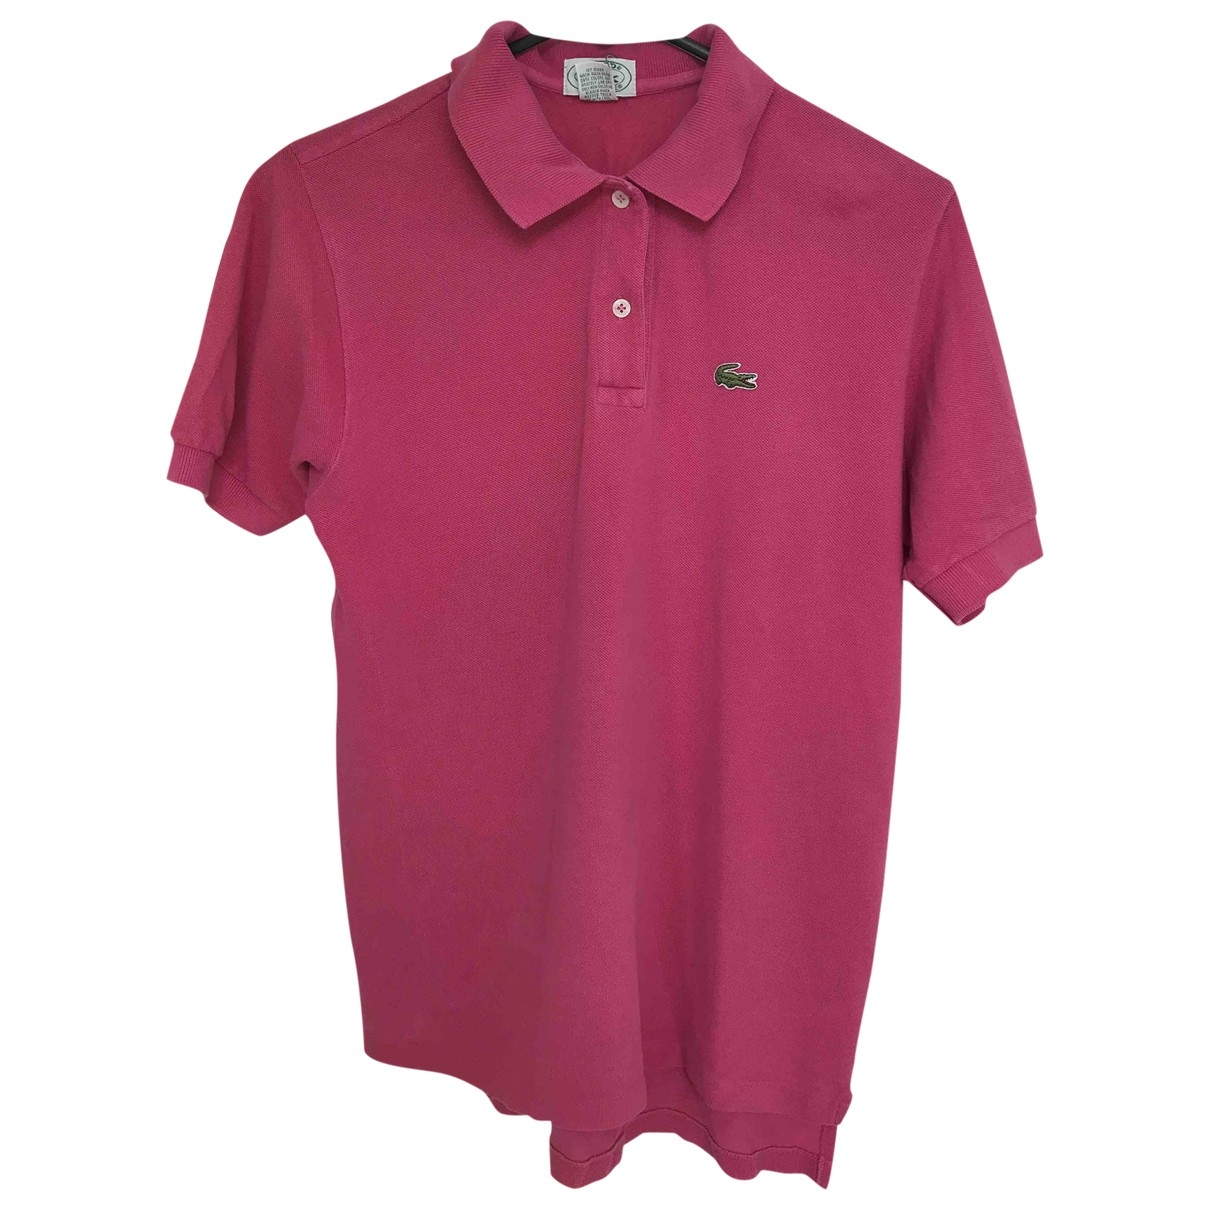 Lacoste \N Pink Cotton Polo shirts for Men S International